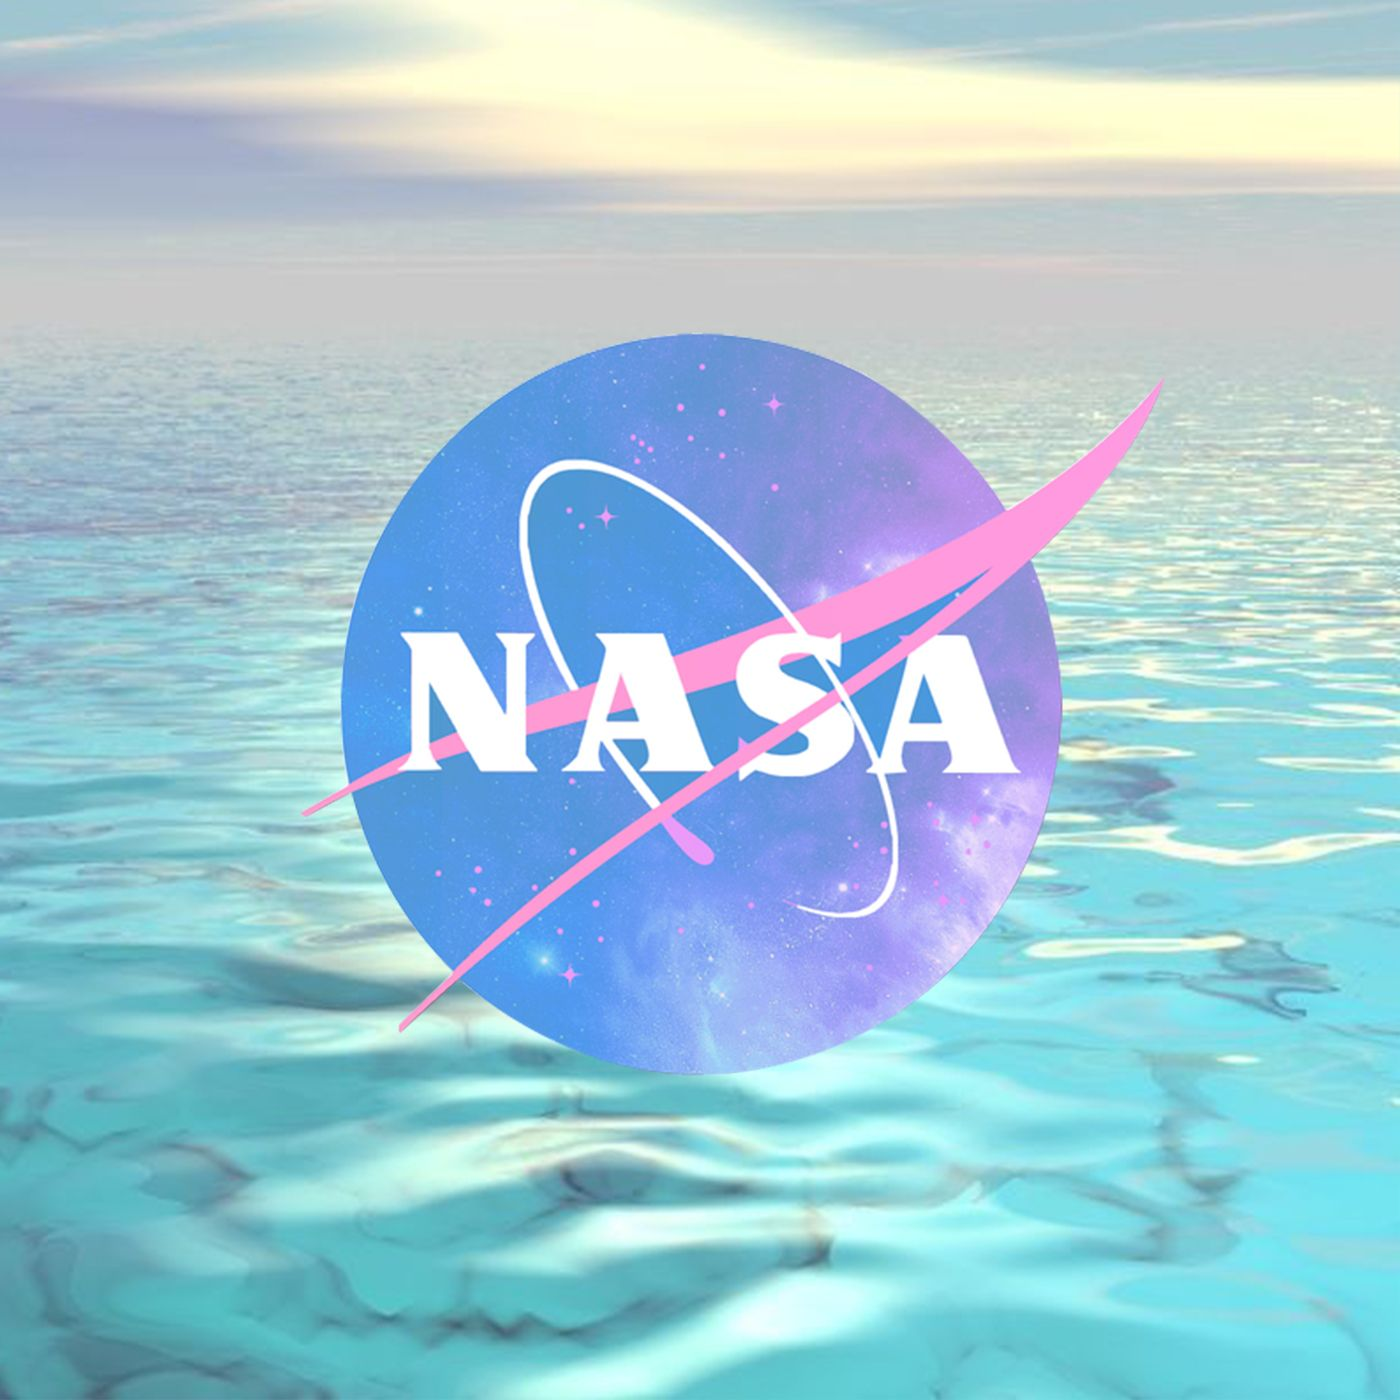 SIKE VAPORWAVE PASTEL SEA AND NASA T SHIRT IN WHITE · SIKE